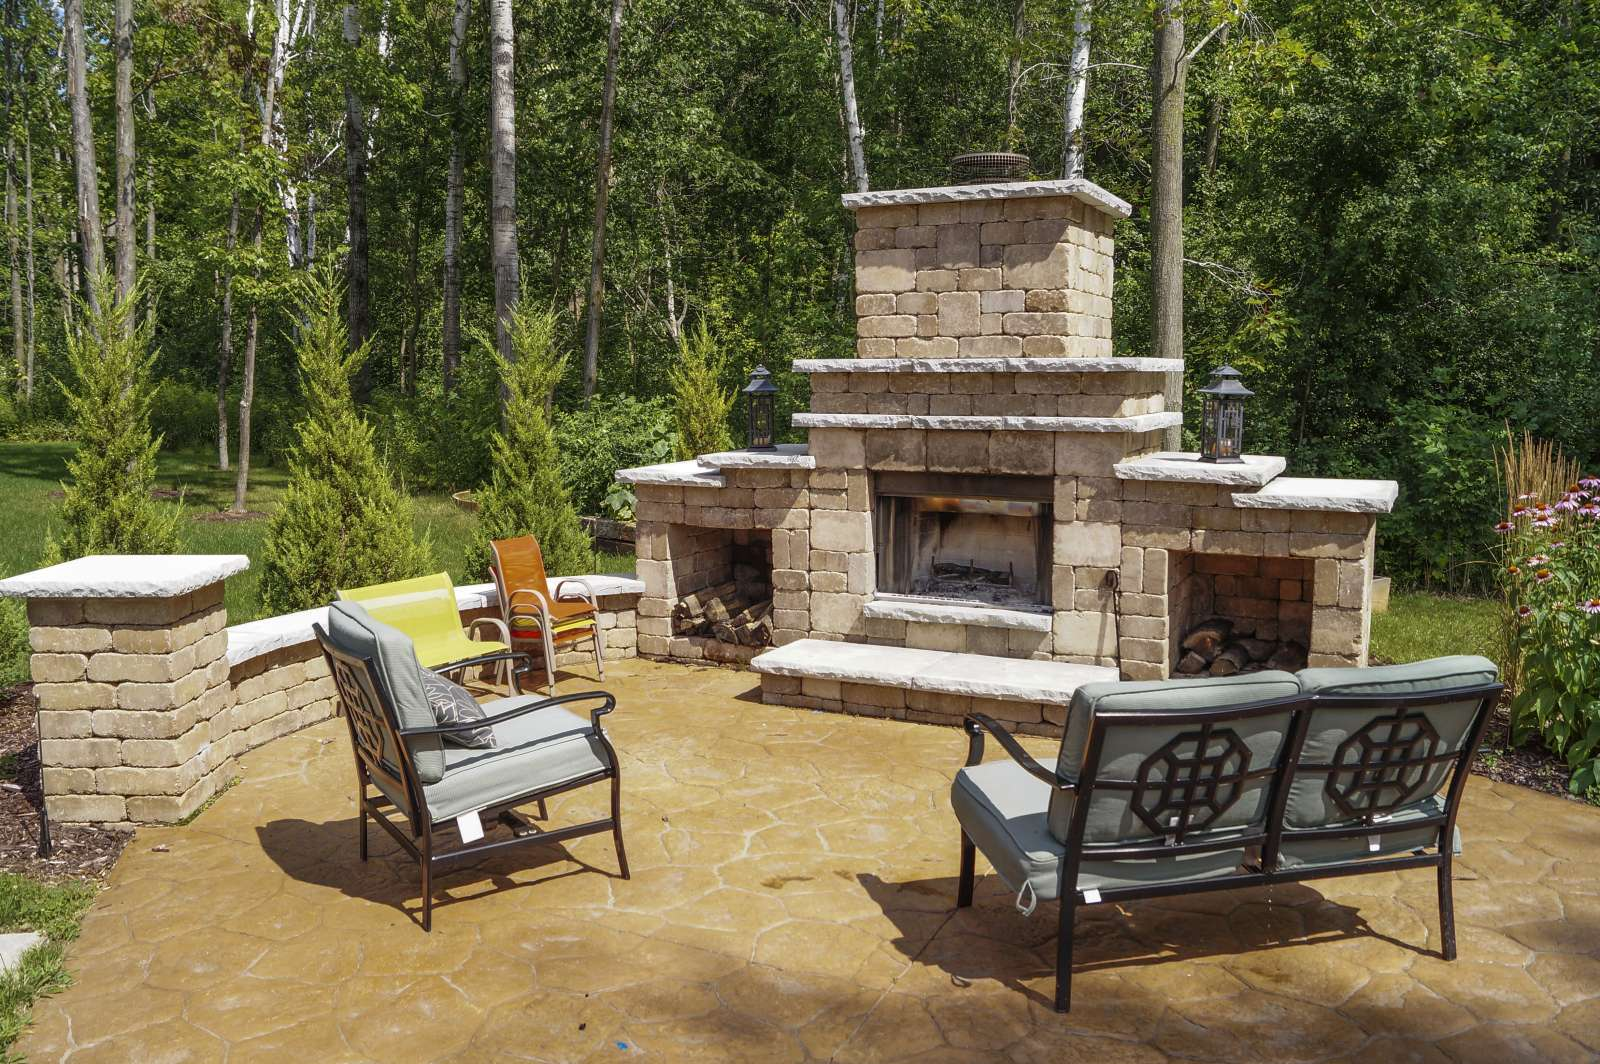 backyard fireplaces outdoor design patio decorate fire best pits ideas room tips fireplace